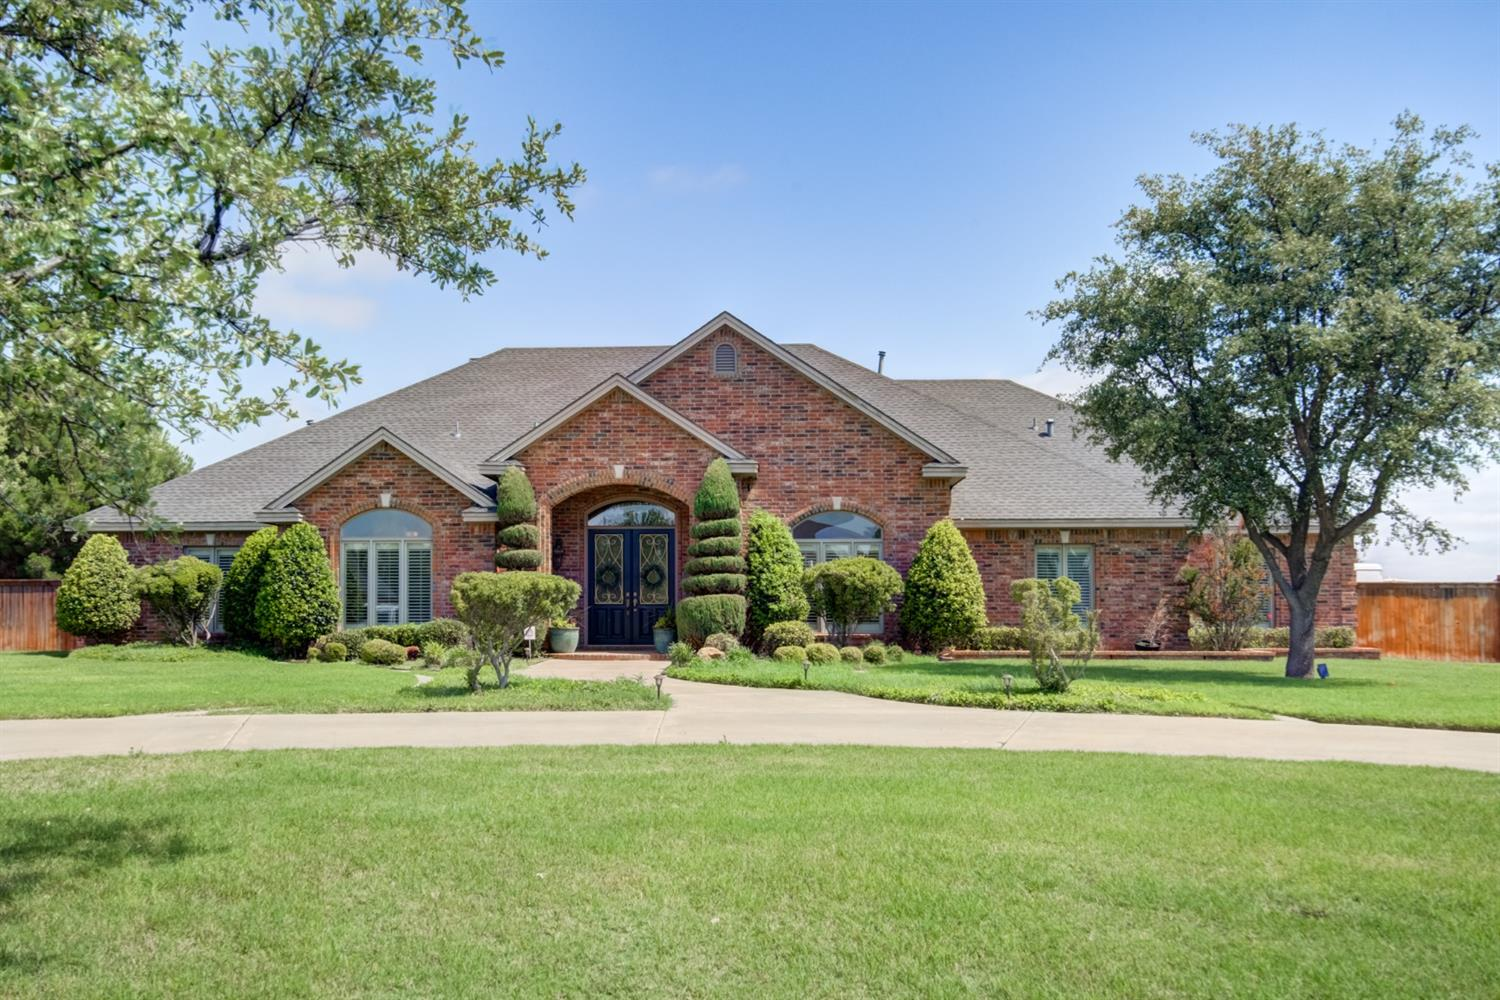 This is a stunning custom built Abbe home on an acre of land in the highly sought after golf cart community of Highland Oaks. Features include a large circle drive, large side driveway for extra parking, 4 bedrooms, 4 bathrooms, 3 car garage, custom shutters, huge entry, beautiful kitchen, hidden pantry, basement, and a bonus room. There is abundant storage everywhere!! Excellent water here!!! Many updates include recent new A/C unit, water heater, new interior paint in almost every room, 3 brand new garage doors, brand new hardwood floors in living and master bedroom, sprinkler system just serviced and has new modern control panel. So many details like triple crown molding, all custom cabinets throughout, built-ins in every closet, walk in closets in every room, and a surround sound system. This is an amazing community of neighbors, maintained by an HOA with a park, tennis courts, walking track, playground, pools, and a clubhouse! Don't miss the opportunity to own this stunning home!